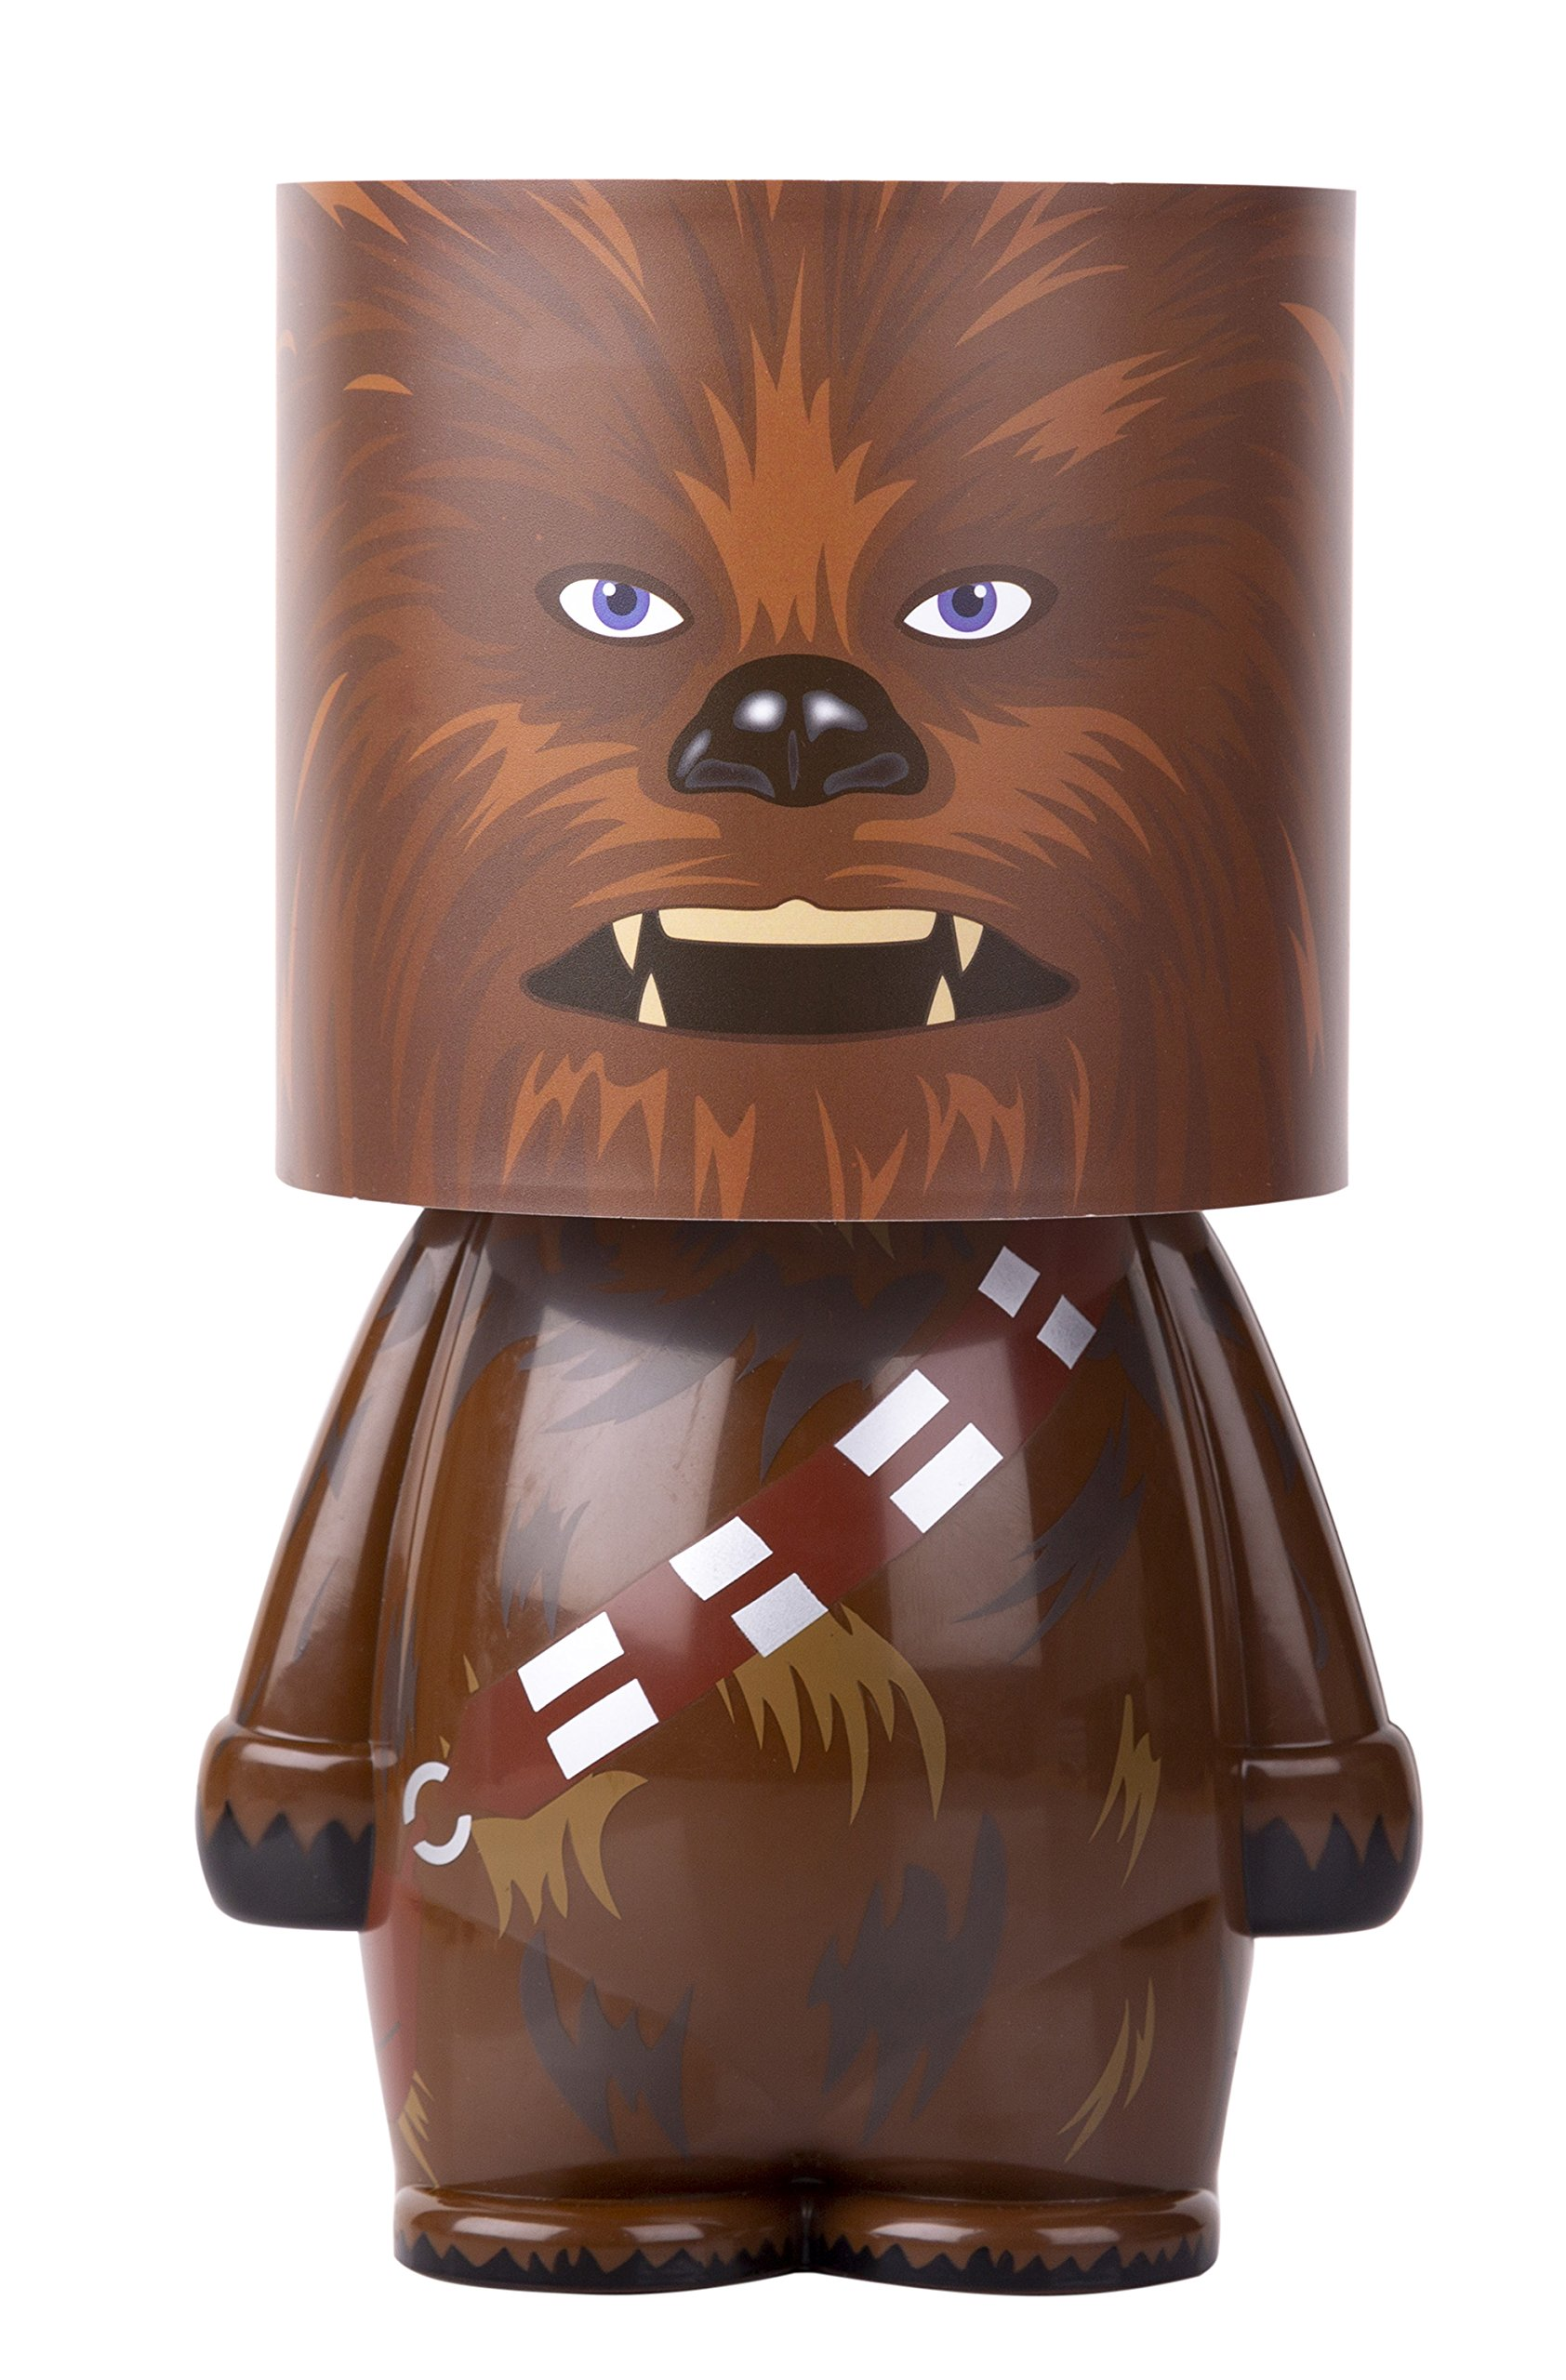 Groovy Uk Chewbacca Star Wars Look A lite LED Table Lamp